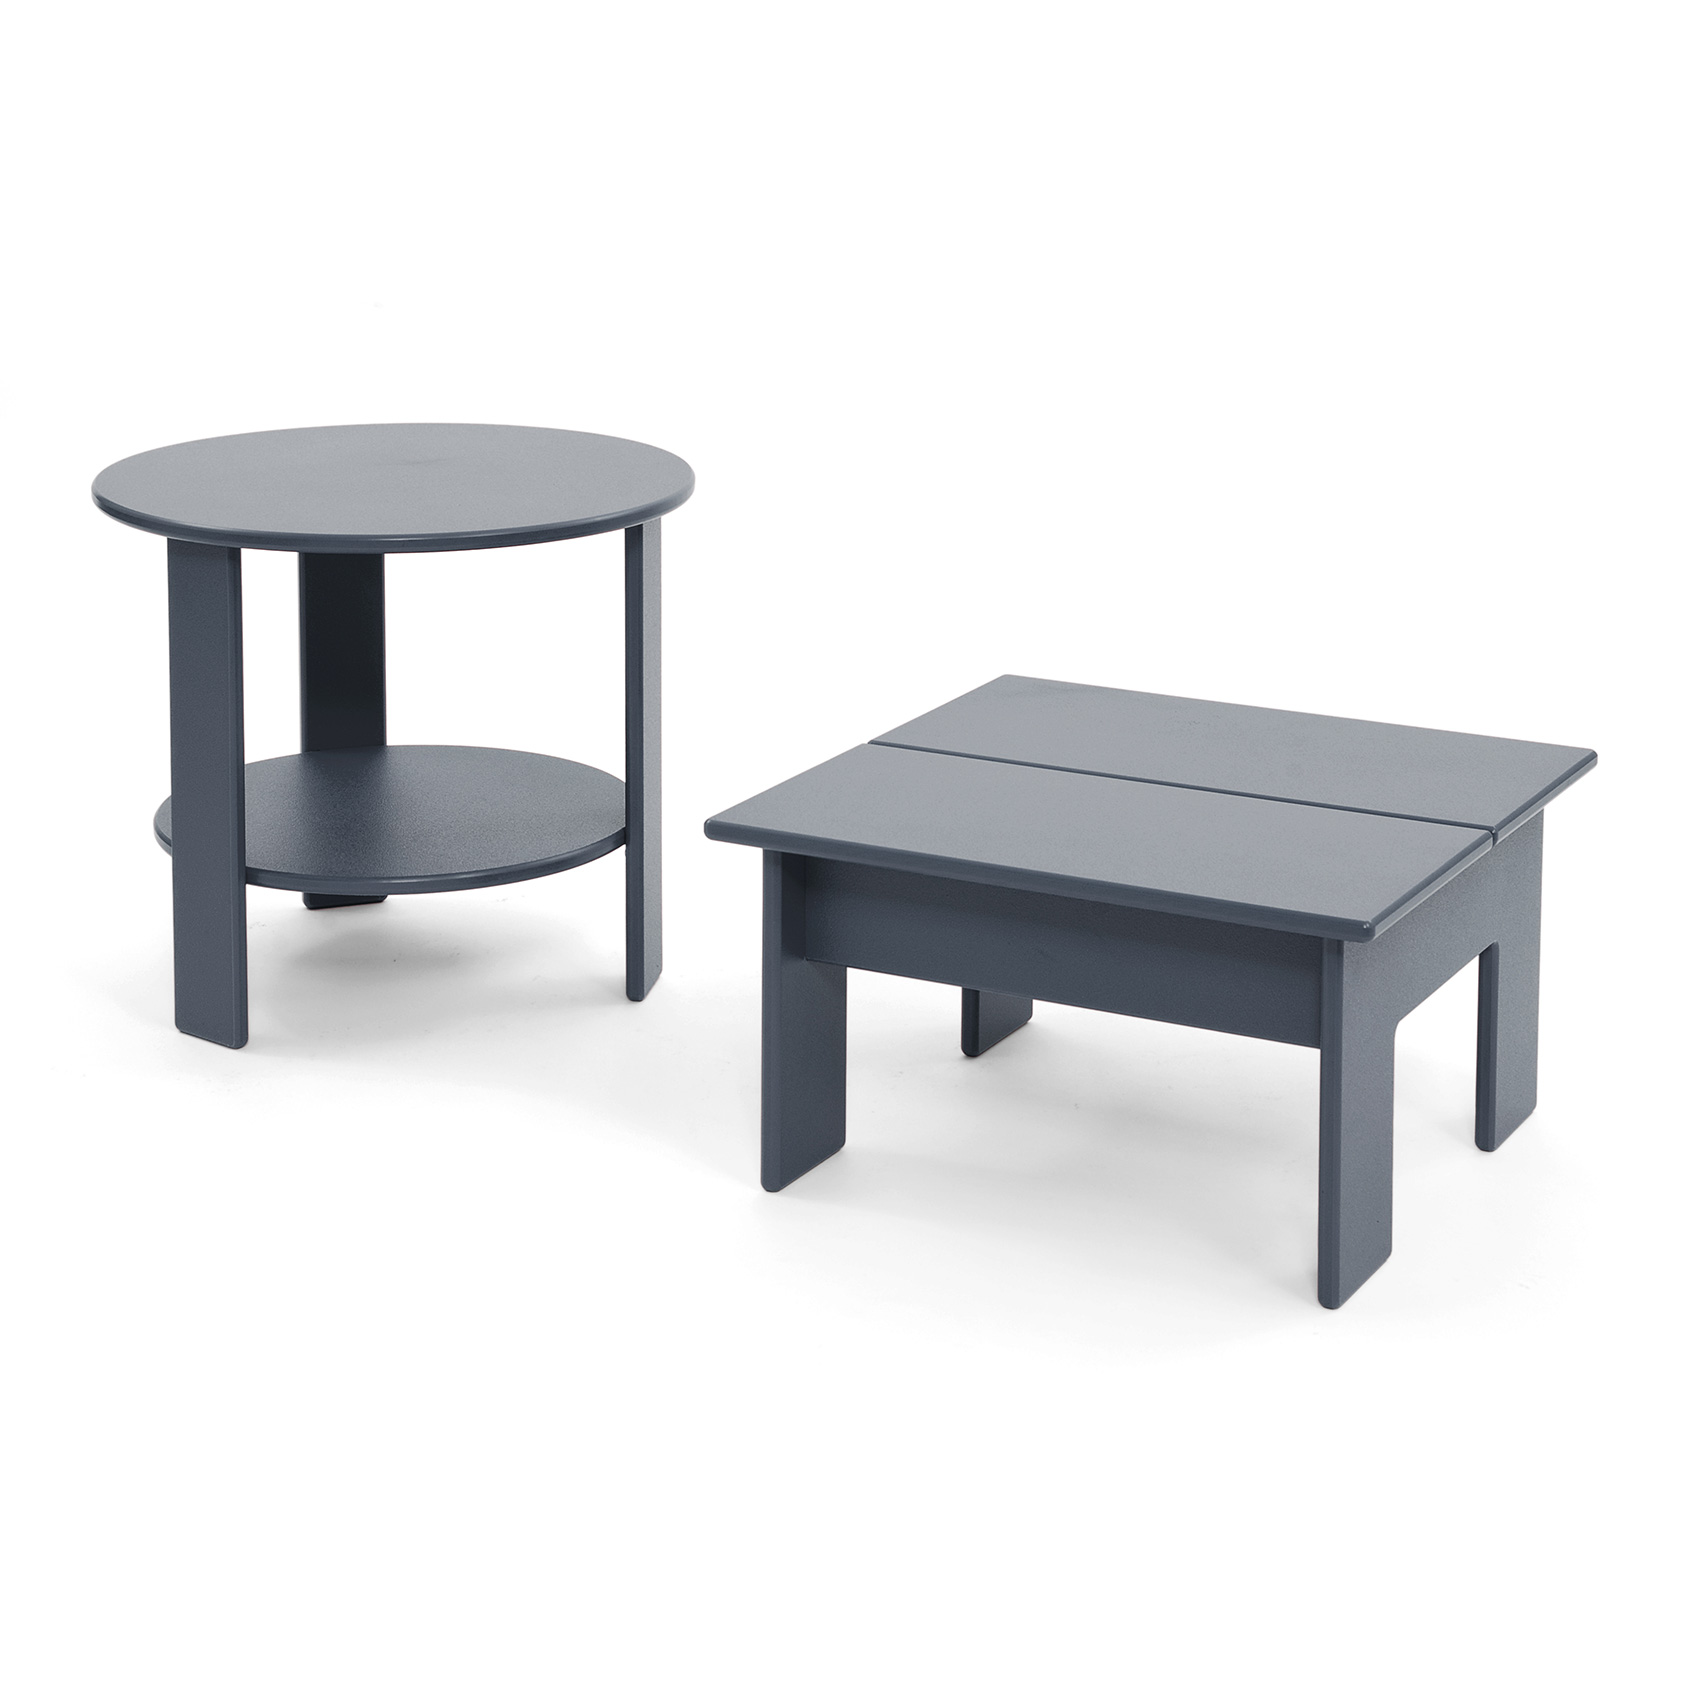 round side table for outdoor lollygagging loll designs lollygagger sidetable set grey and chairs under cabinet wine rack gray dining room patio umbrella fabric mirrored chest